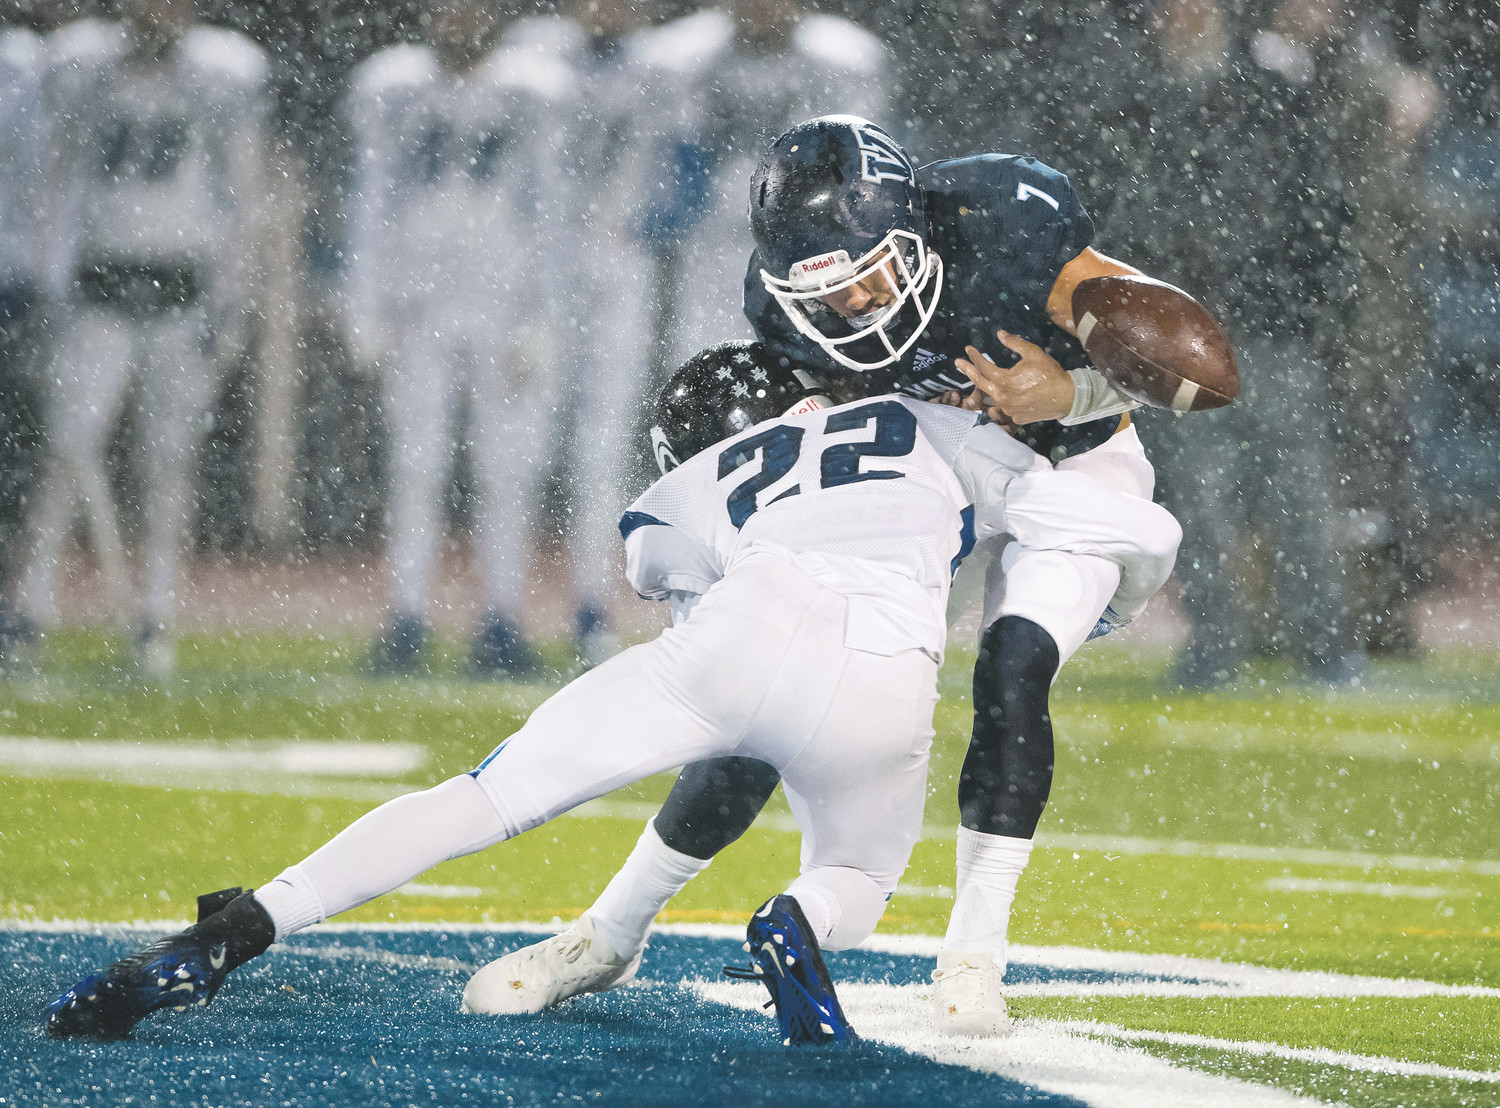 Extremely bad conditions made holding onto the ball a challenge for Valor Christian's Joshiah Davis (7) as Grandview's Trevor Greenlee (22) levels a solid hit.    Davis managed 70 yards on 20 carries on a wet, soggy field Friday night at Valor Stadium as the Eagles were eliminated from the playoffs 28-16.  This year will mark the first time Valor will not play in a State Championship since 2008.